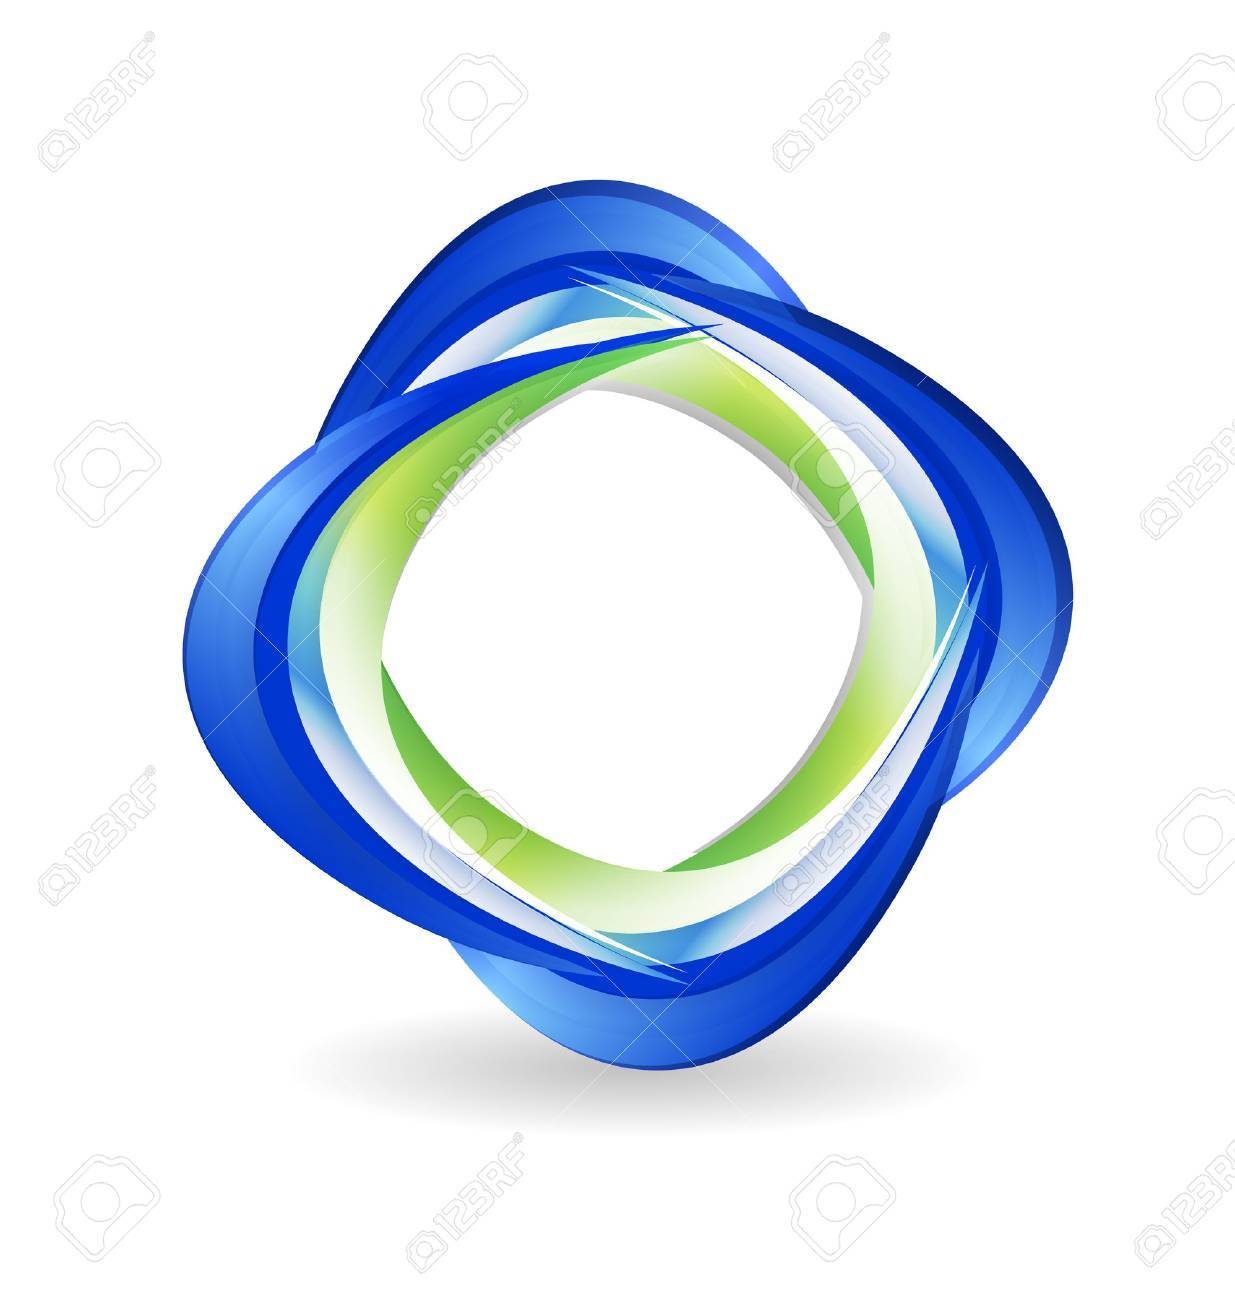 Abstract business icon vector Stock Vector - 23041678